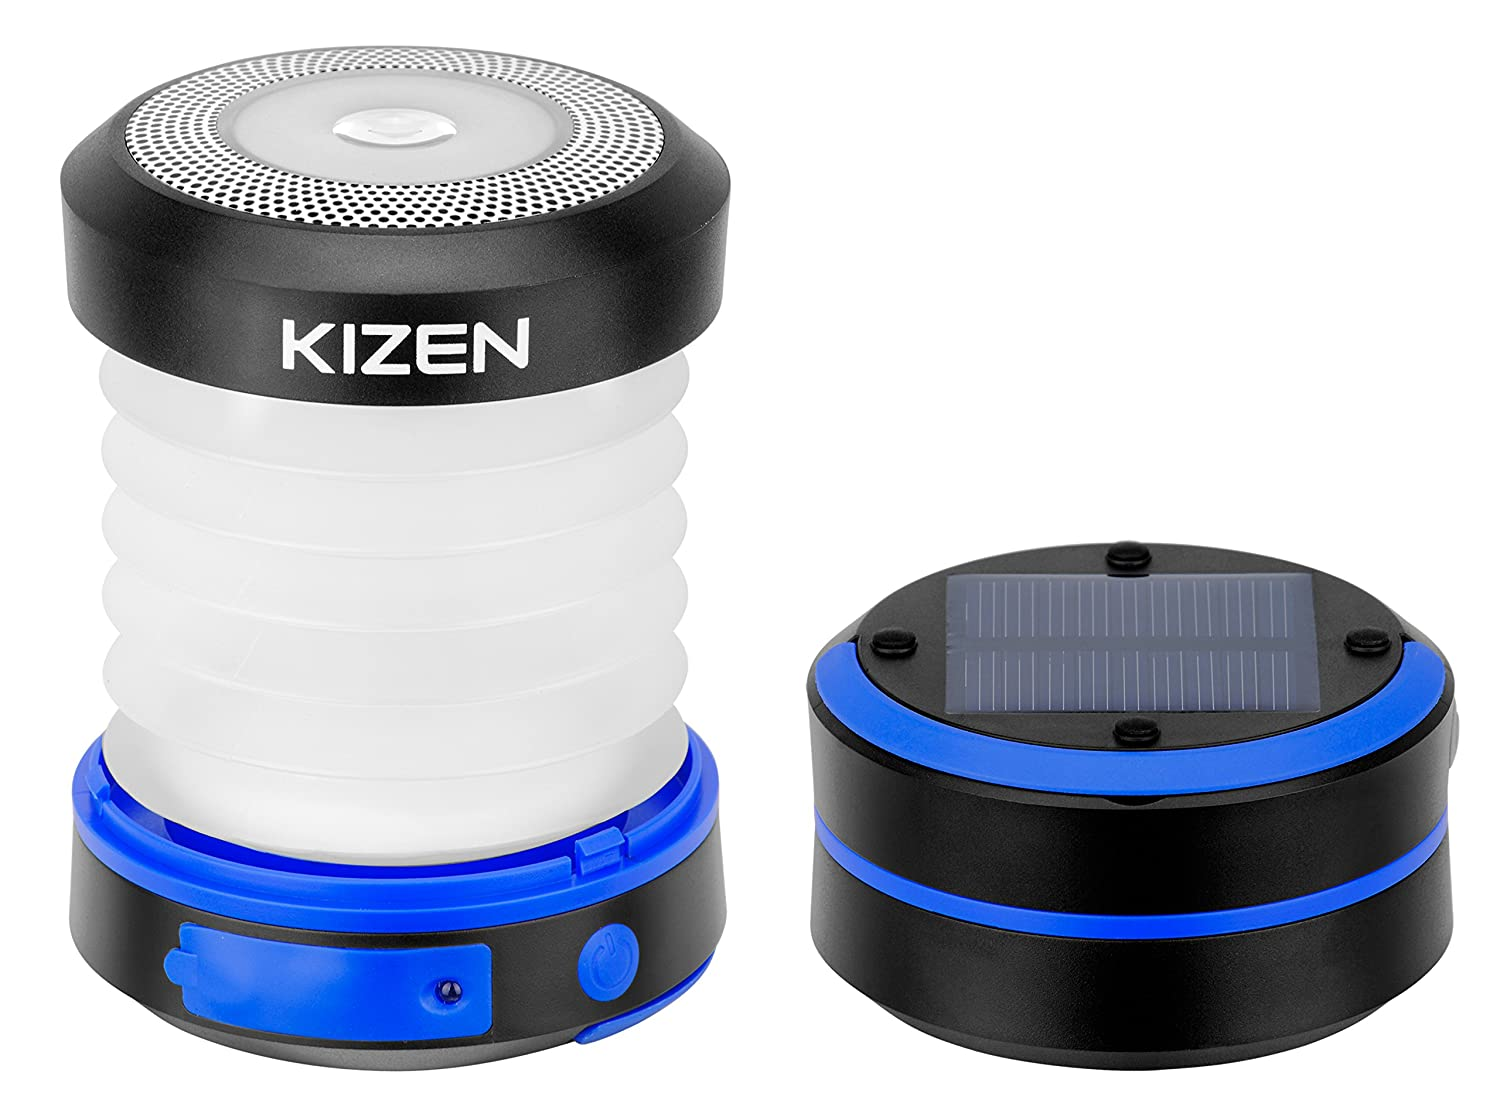 Kizen Solar Powered LED Camping Lantern – Solar or USB Chargeable, Collapsible Space Saving Design, Emergency Power Bank, Flashlight, Water Resistant. for Outdoor Night Hiking Camping Lawn